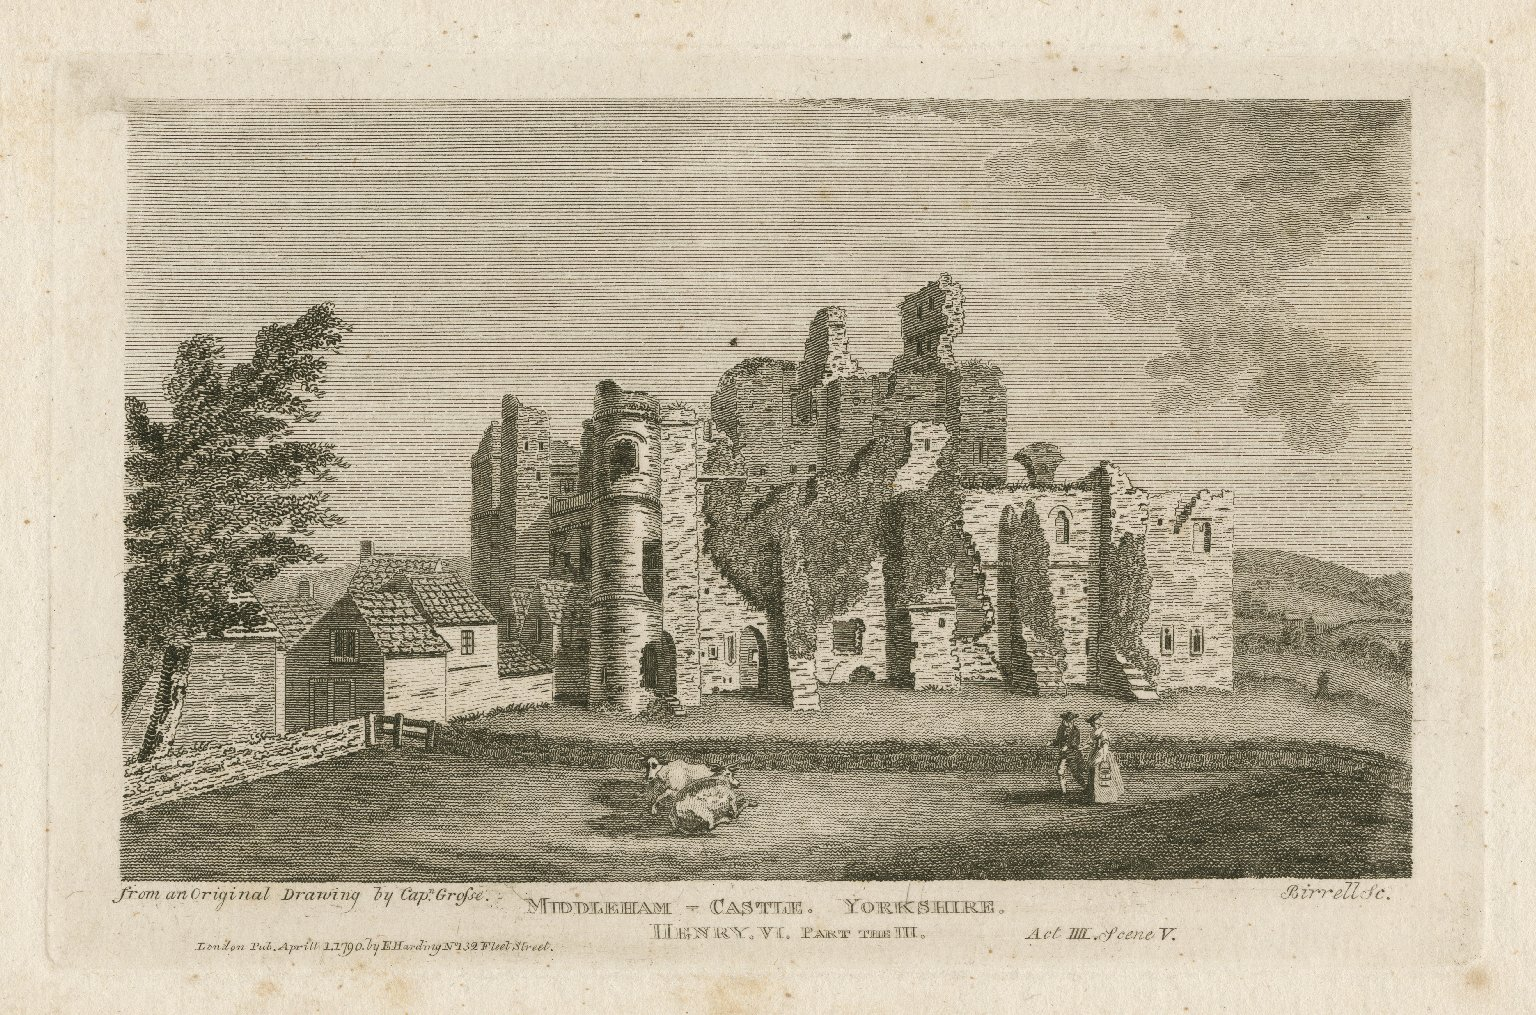 Middleham Castle, Yorkshire [graphic] : Henry VI, part the III, act IIII, scene V / from an original drawing by Capt. Grosse ; Birrell, sc.